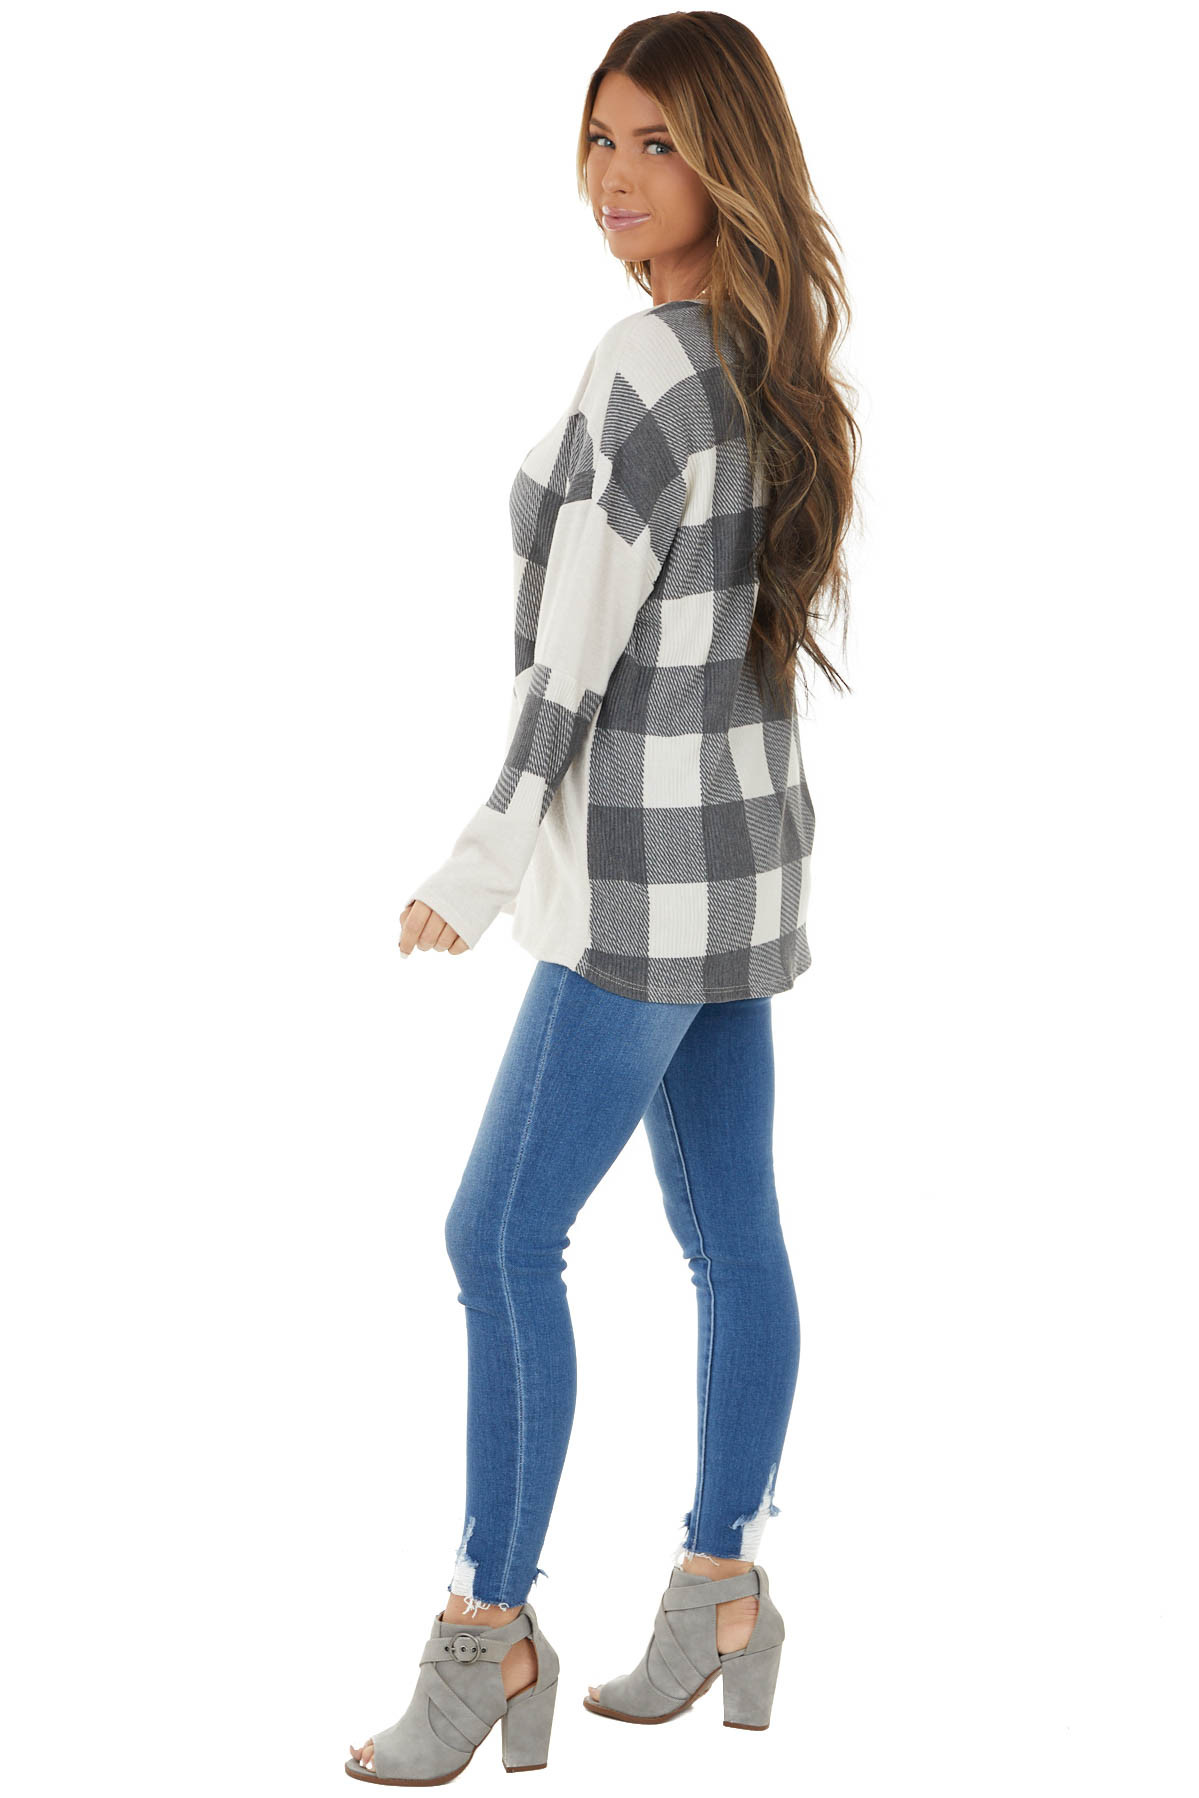 Ivory Buffalo Plaid Long Sleeve Knit Top with Chevron Print